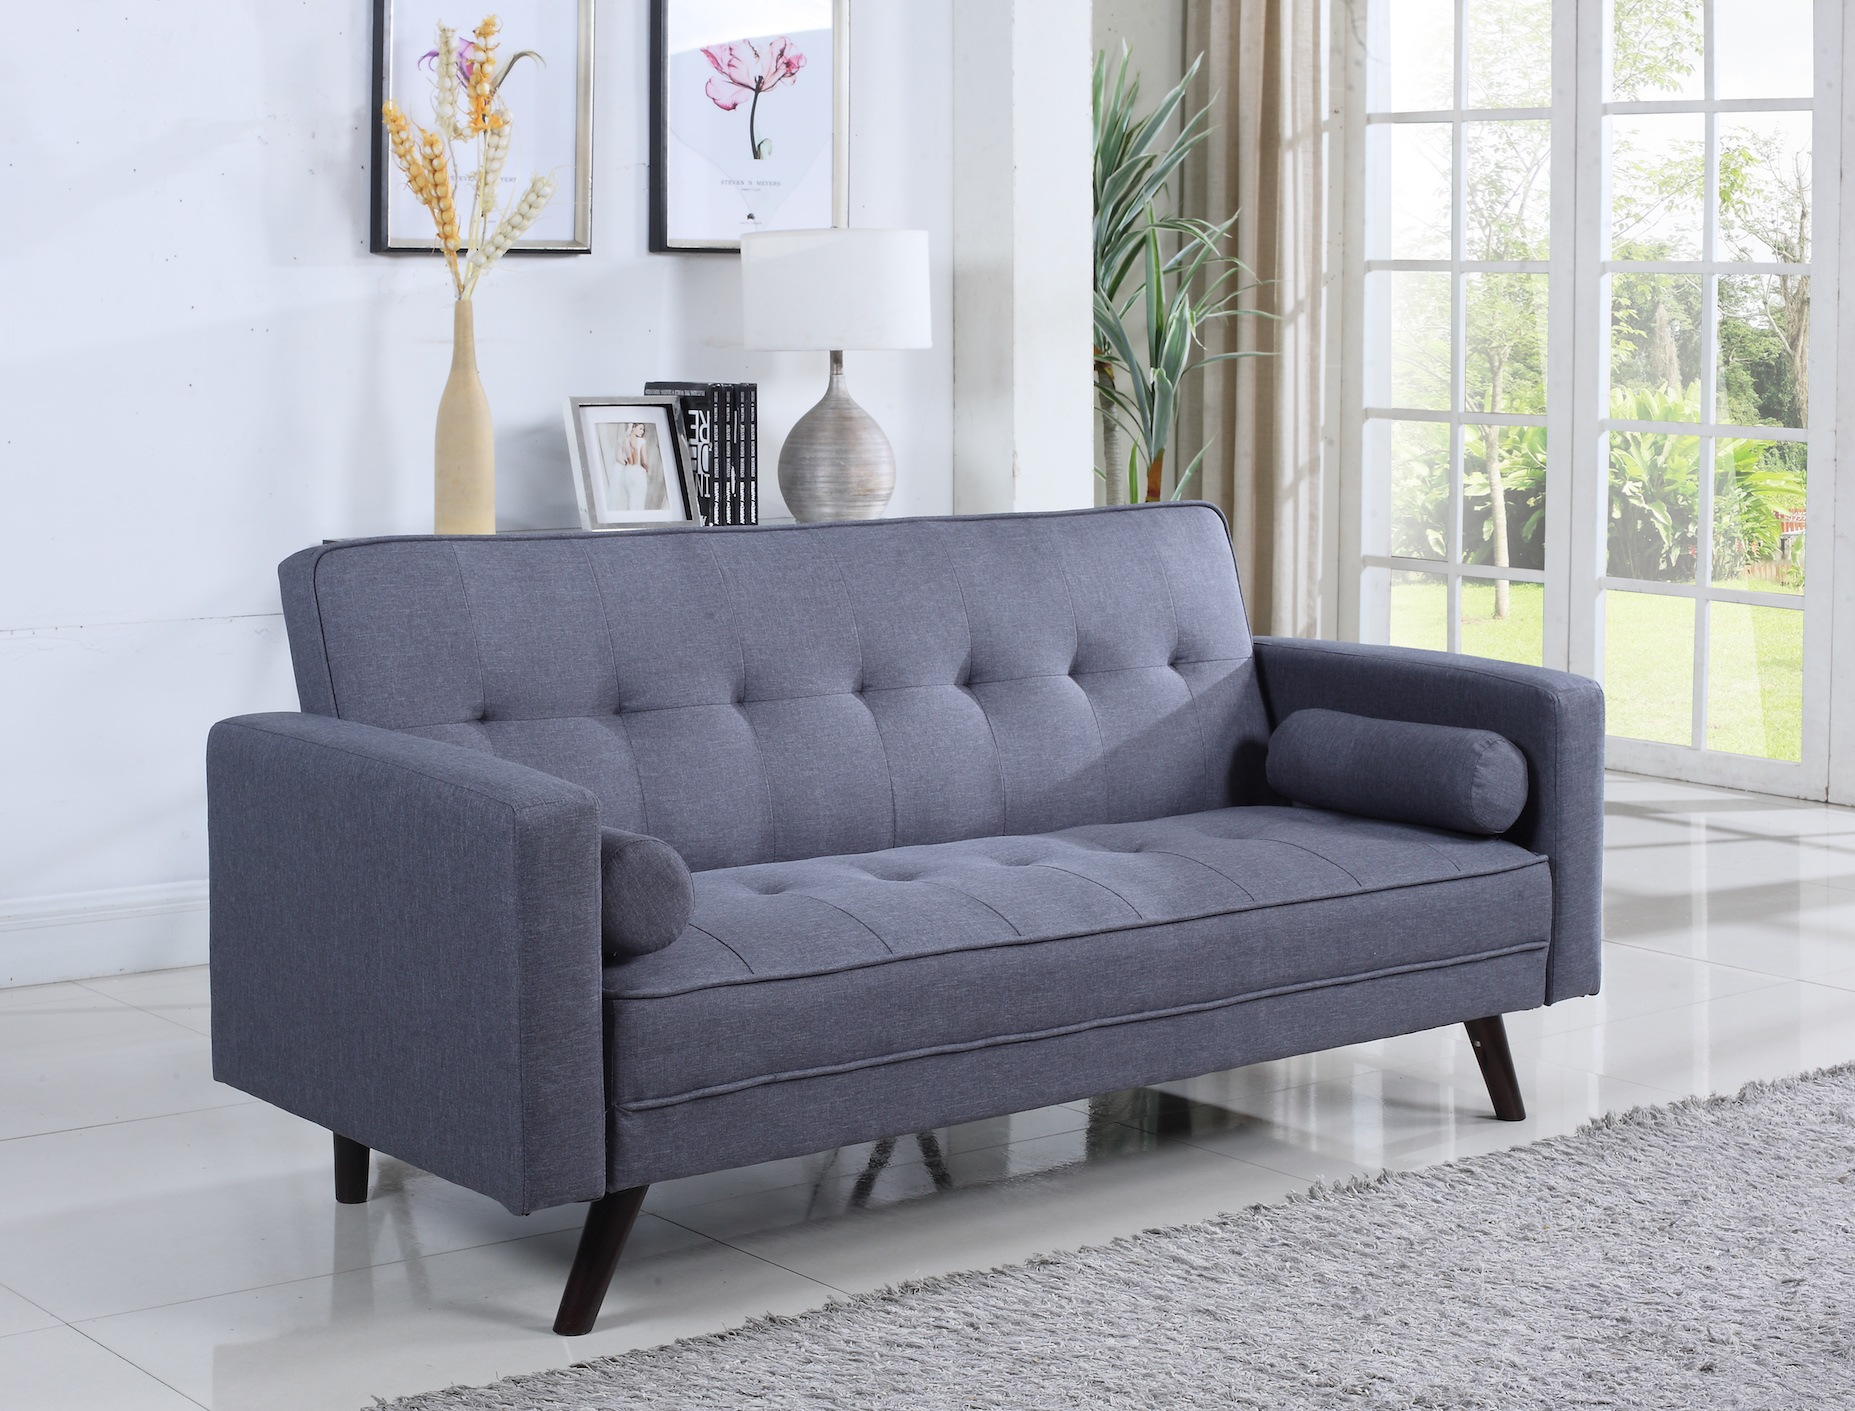 7 Of Walmart S Most Stylish Furniture Pieces That Are Actually